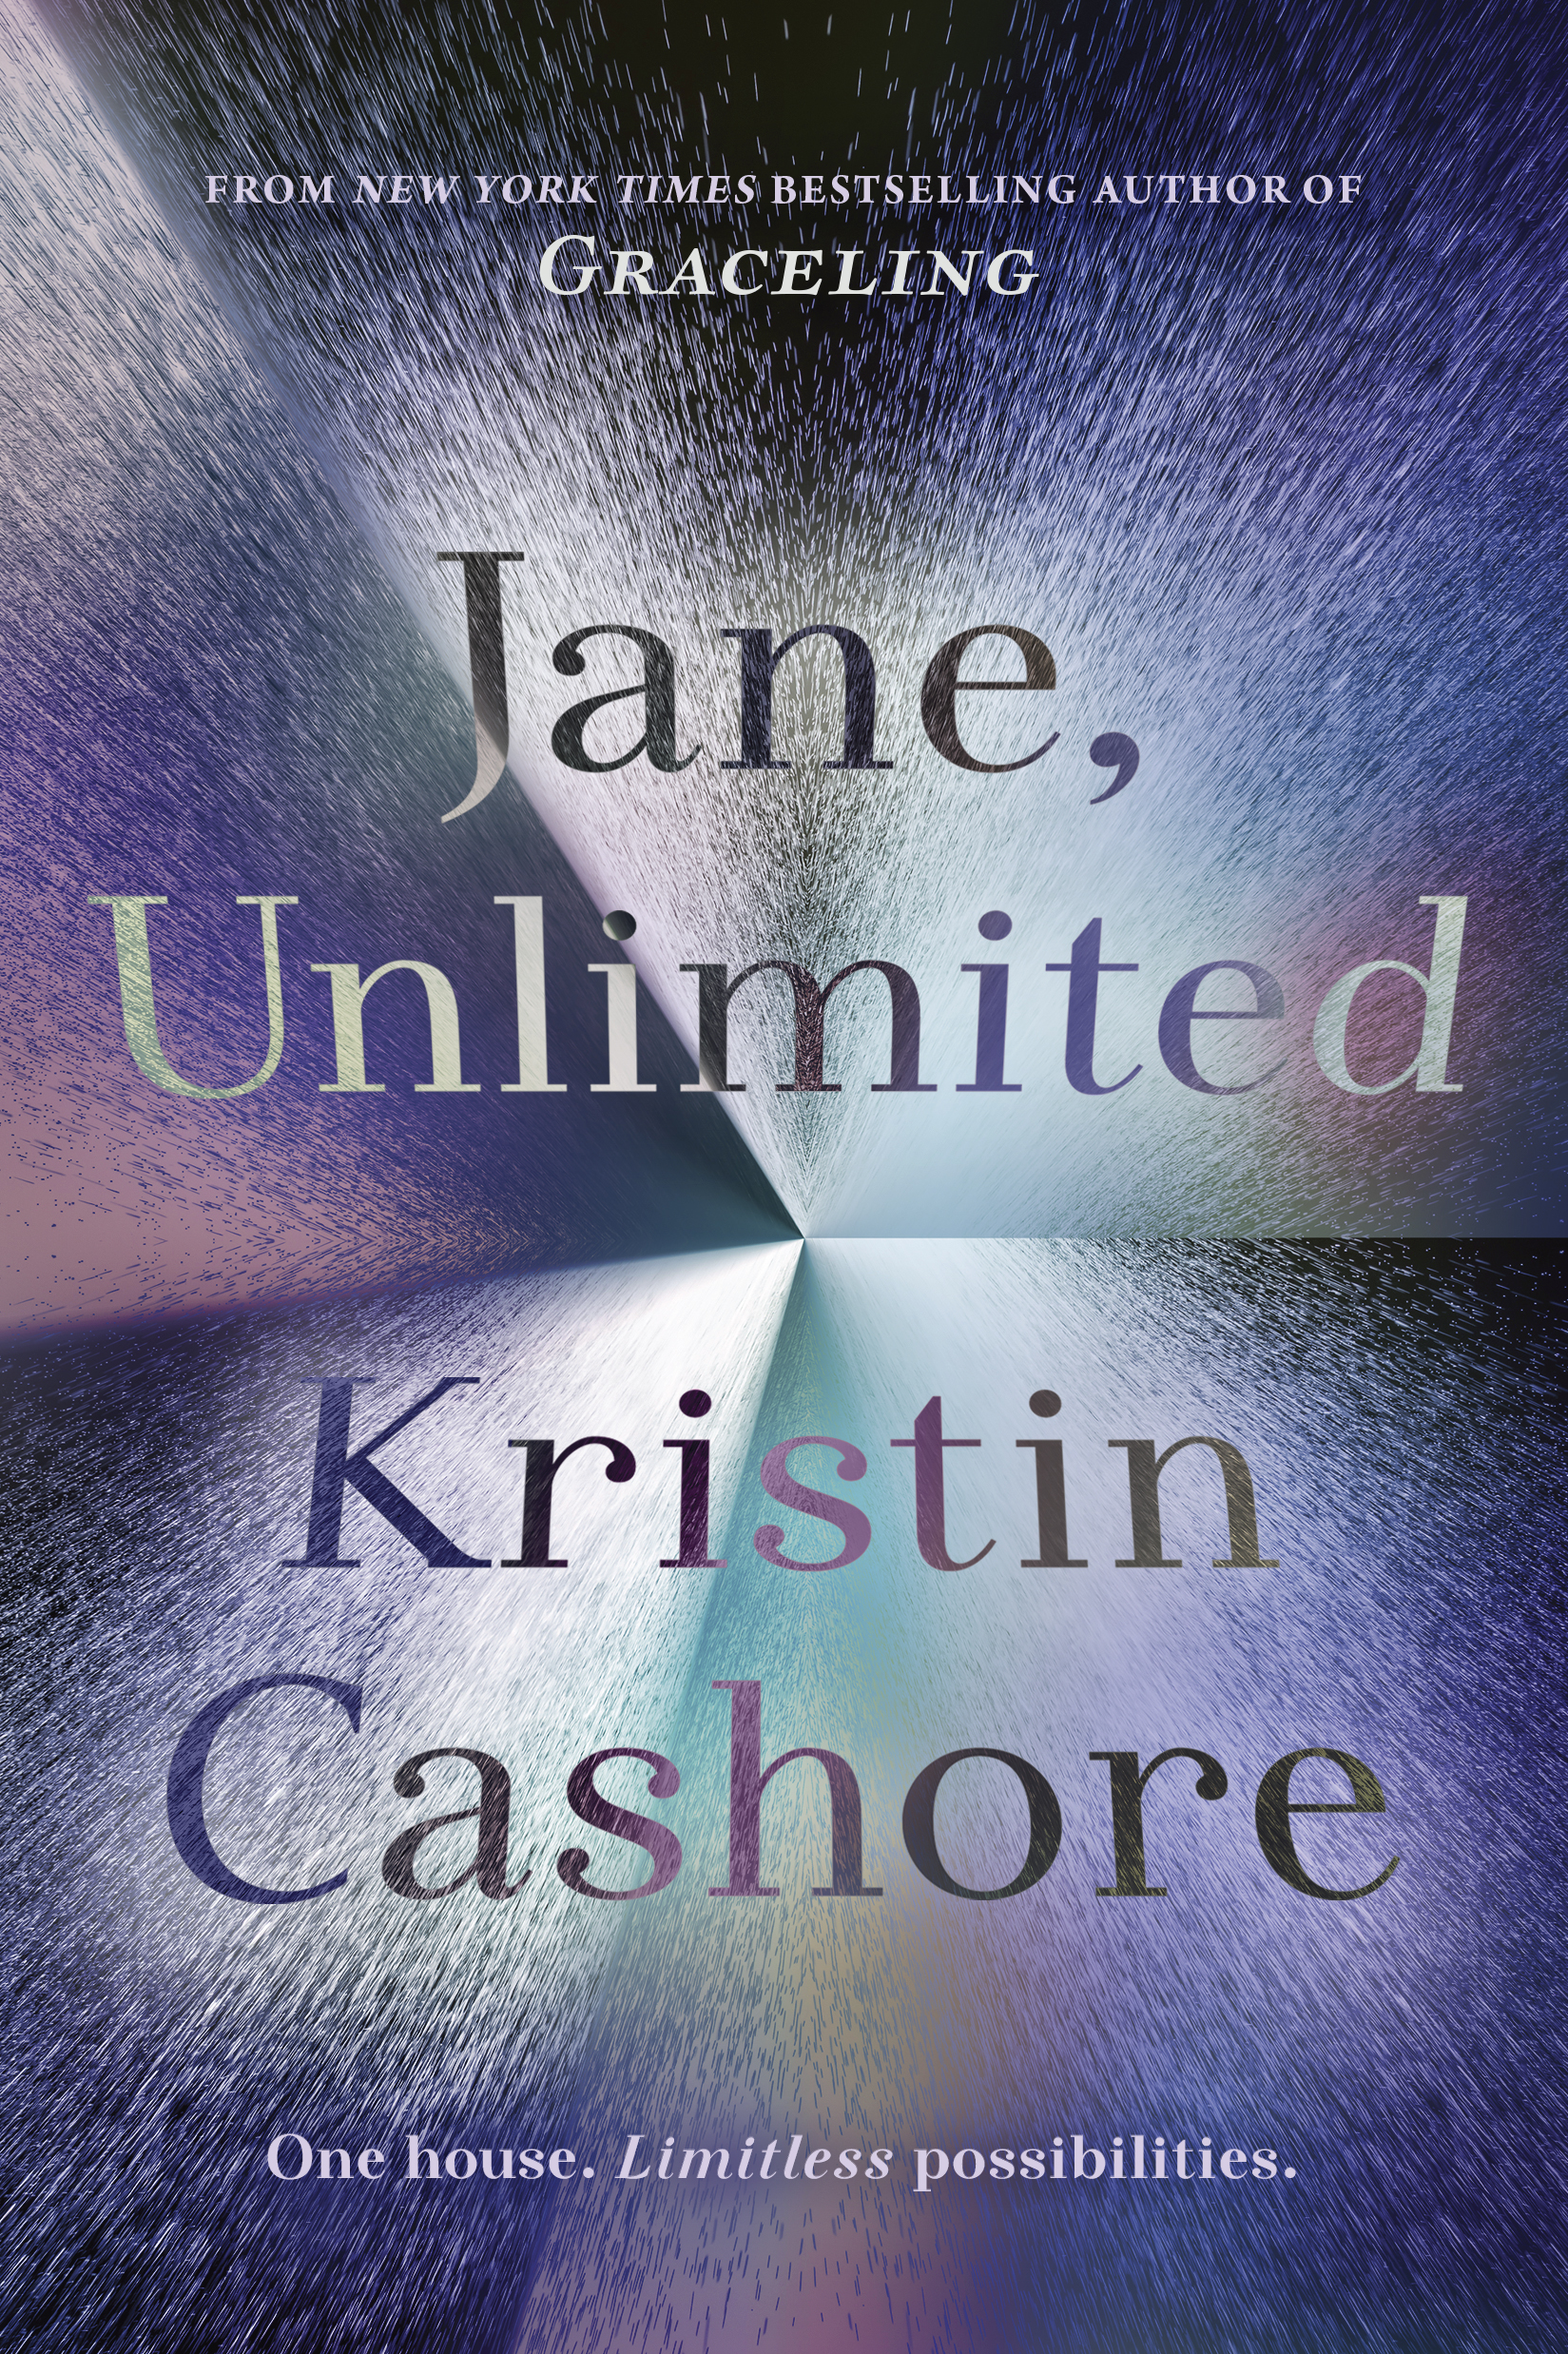 Jane, Unlimited is a spy thriller, space opera, gothic horror story, and more. It's great.